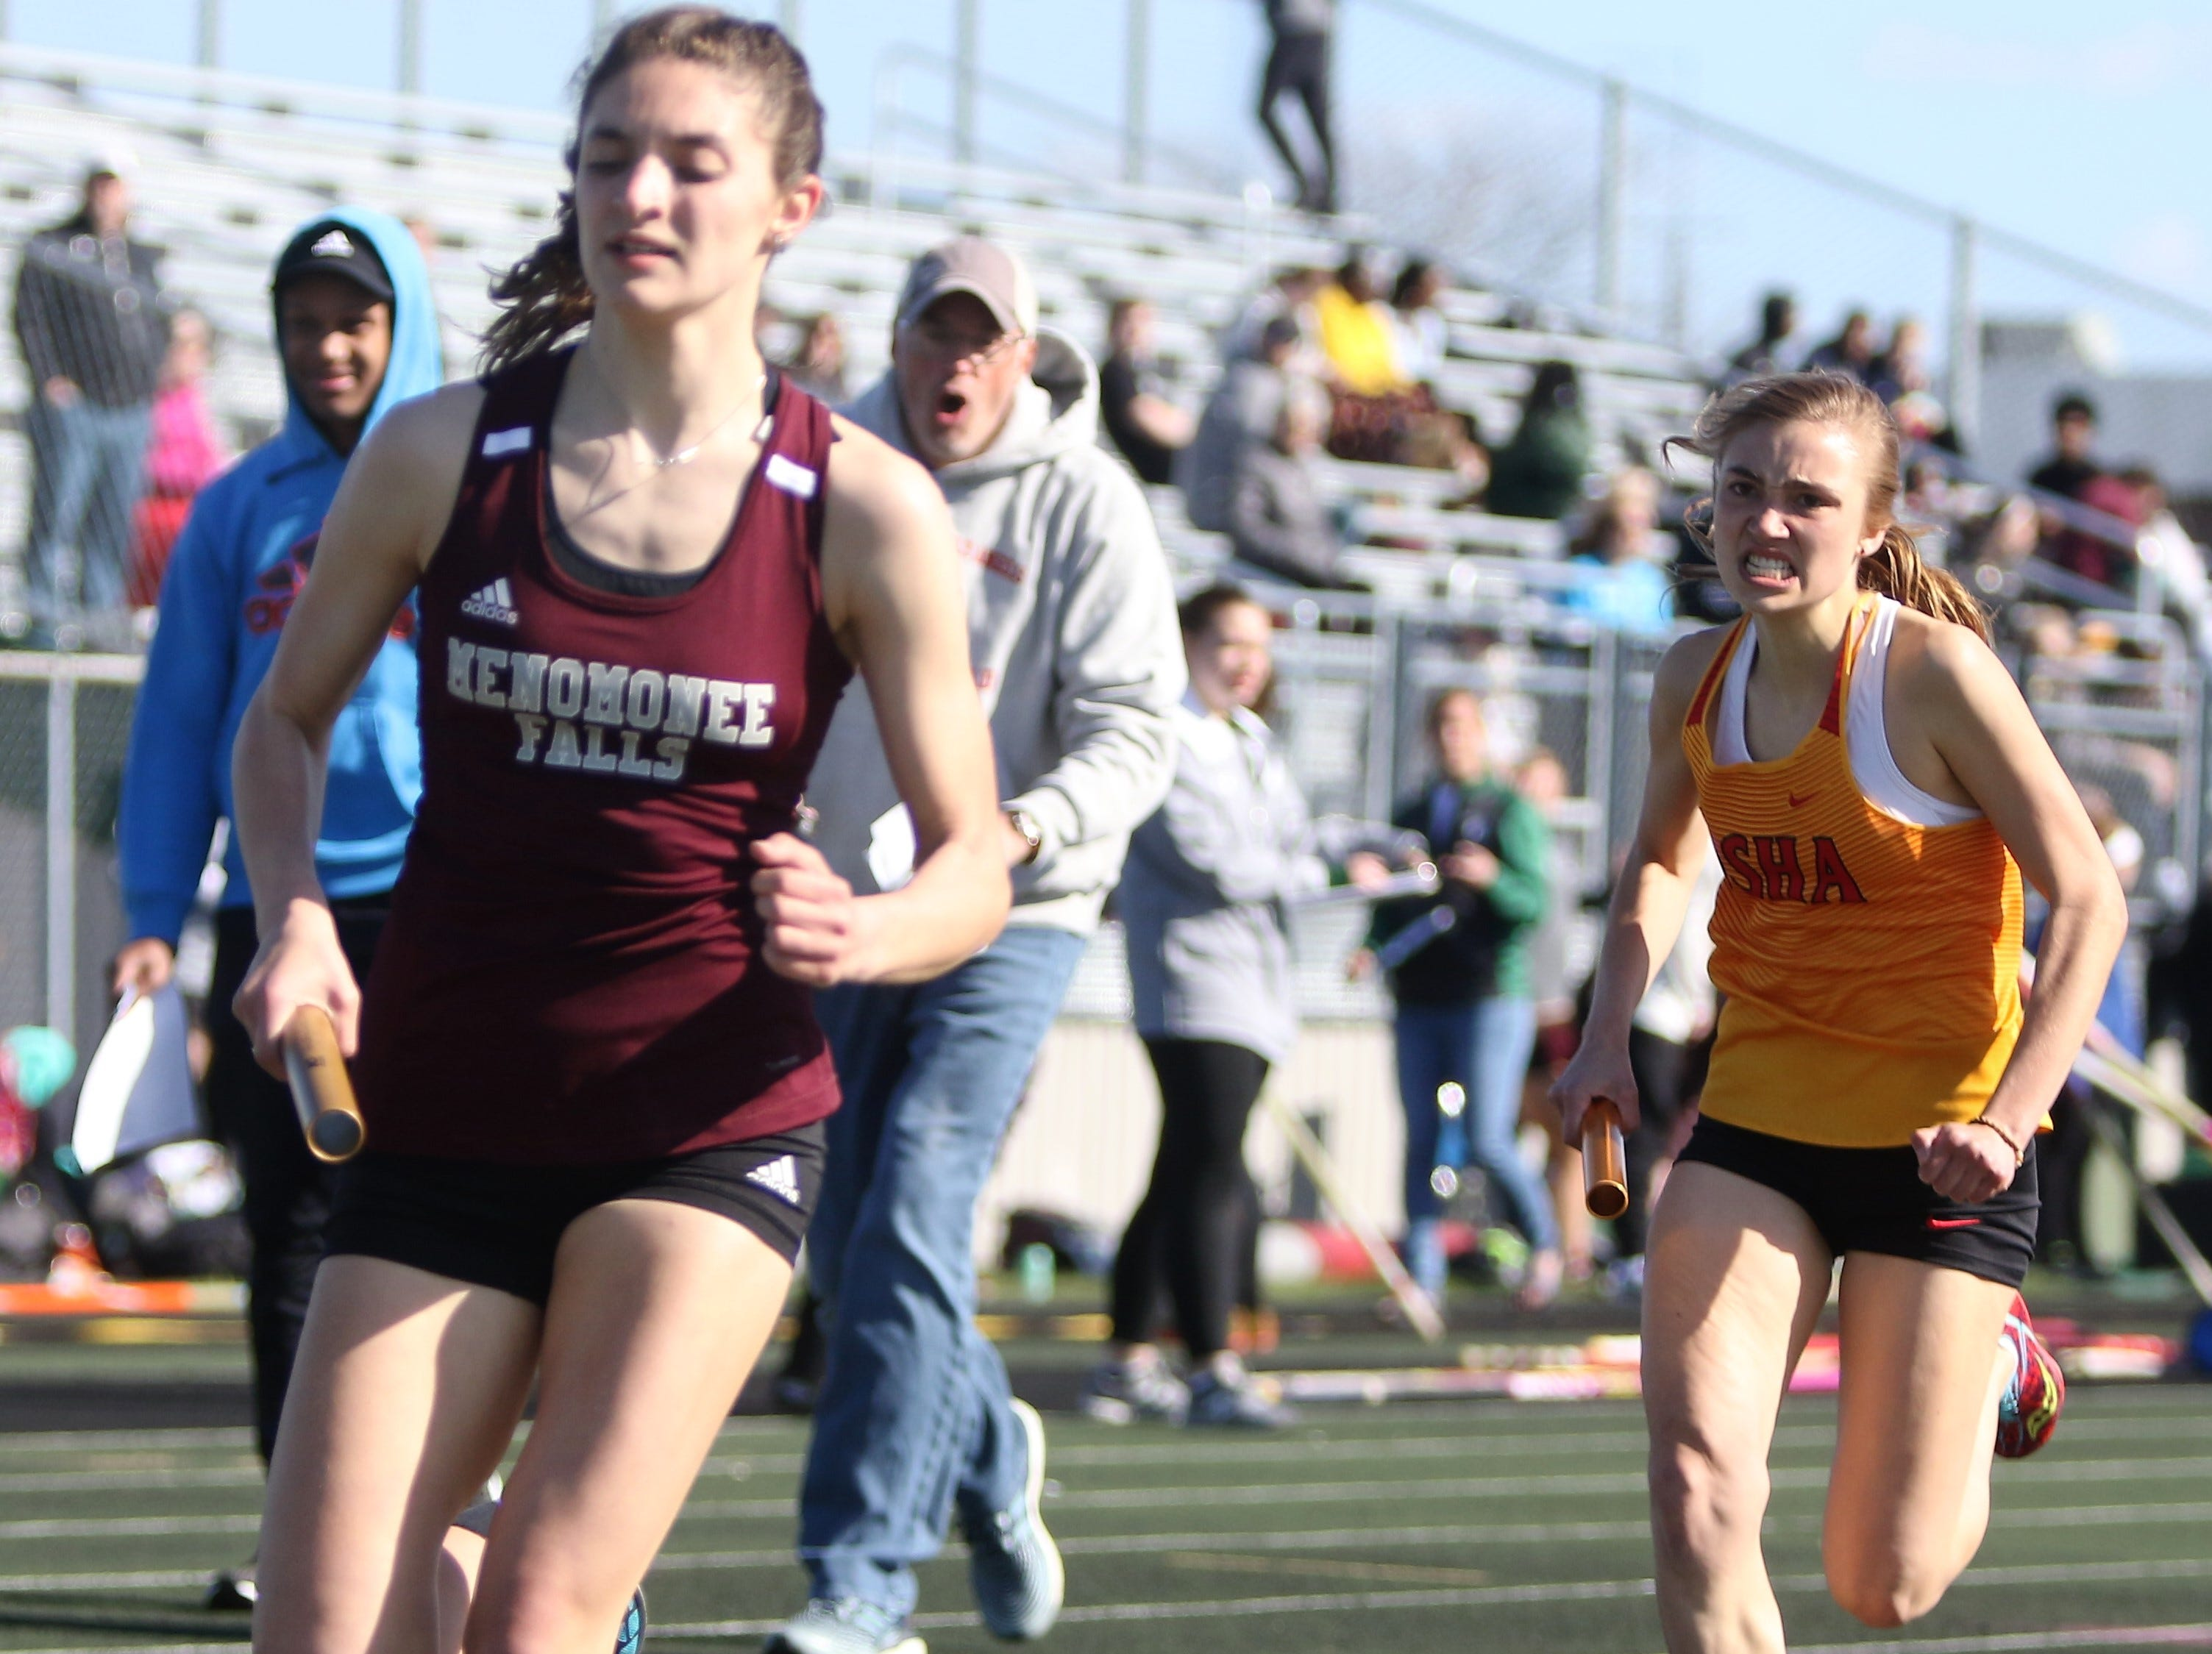 Bonnie Raechel Beres of DSHA chases down a Menomonee Falls runner during the 3200 meter relay at the Dan Benson Invitational at Wauwatosa West on April 26, 2019.